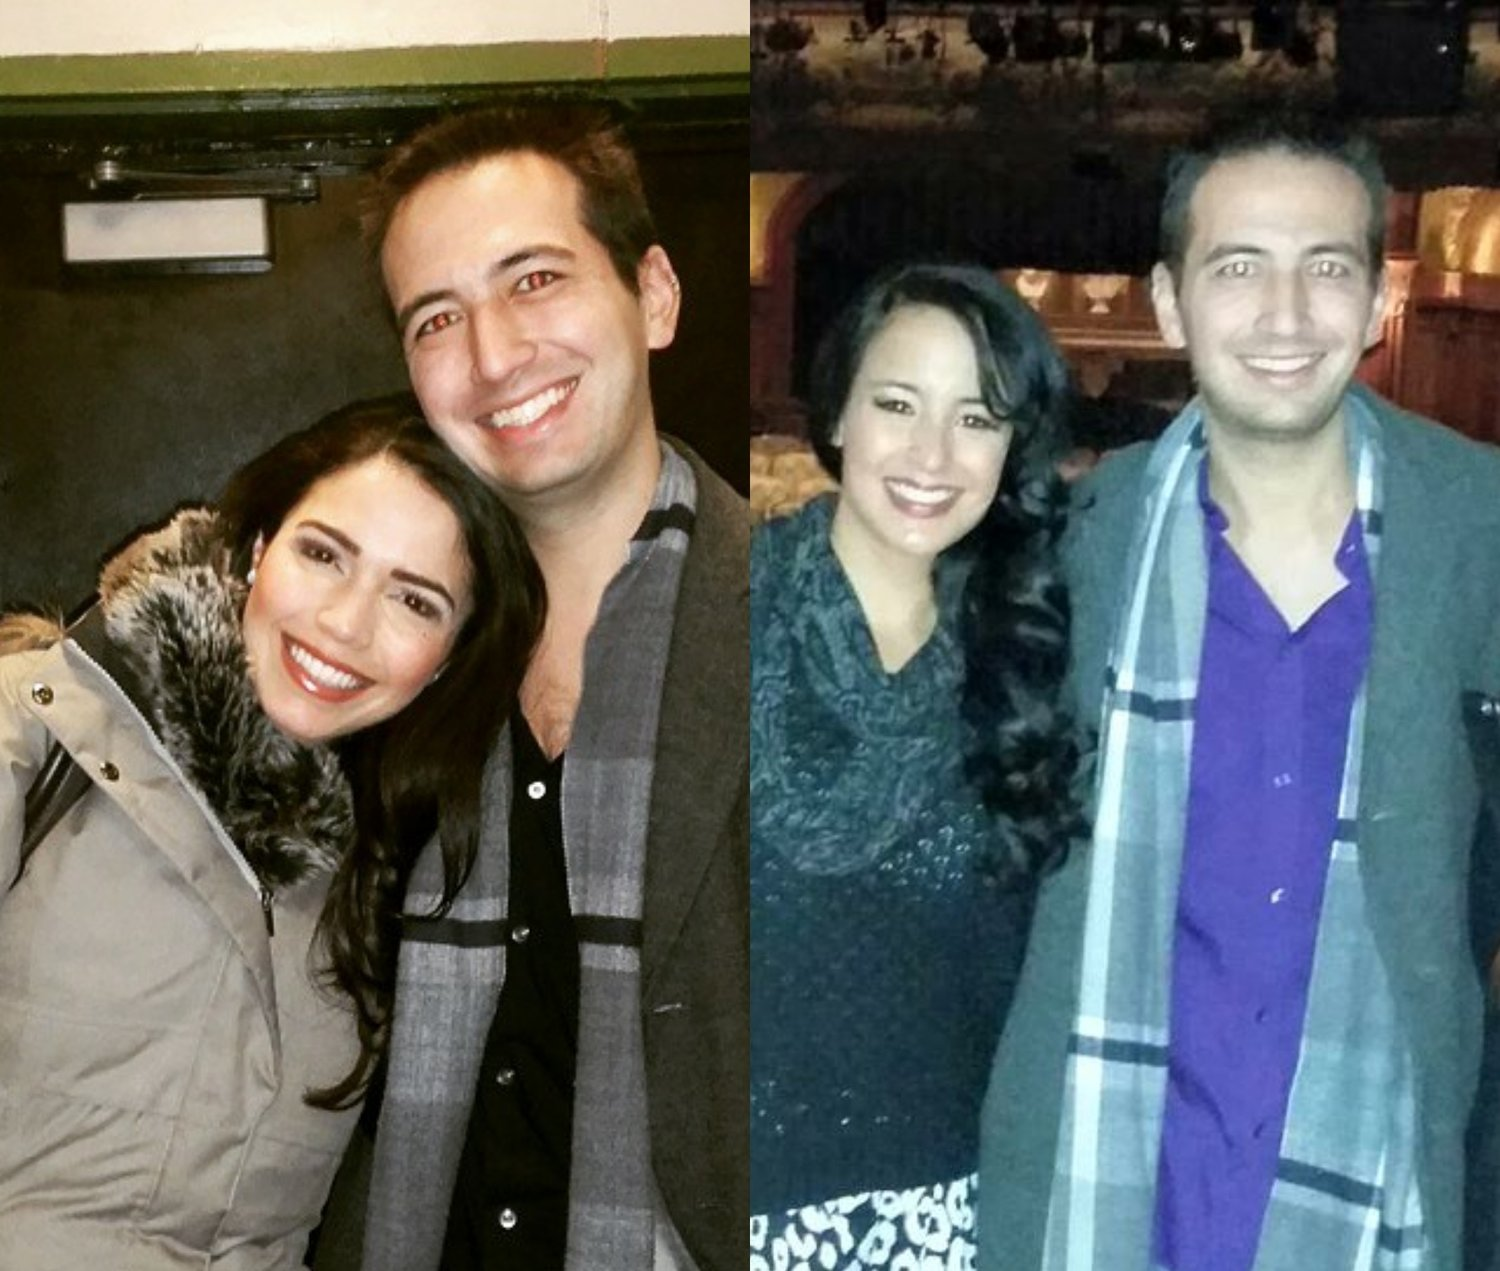 The writer of this piece, with Jacobs and Reed after their performances in Wicked (Nessarose) and Aladdin (Princess Jasmine)